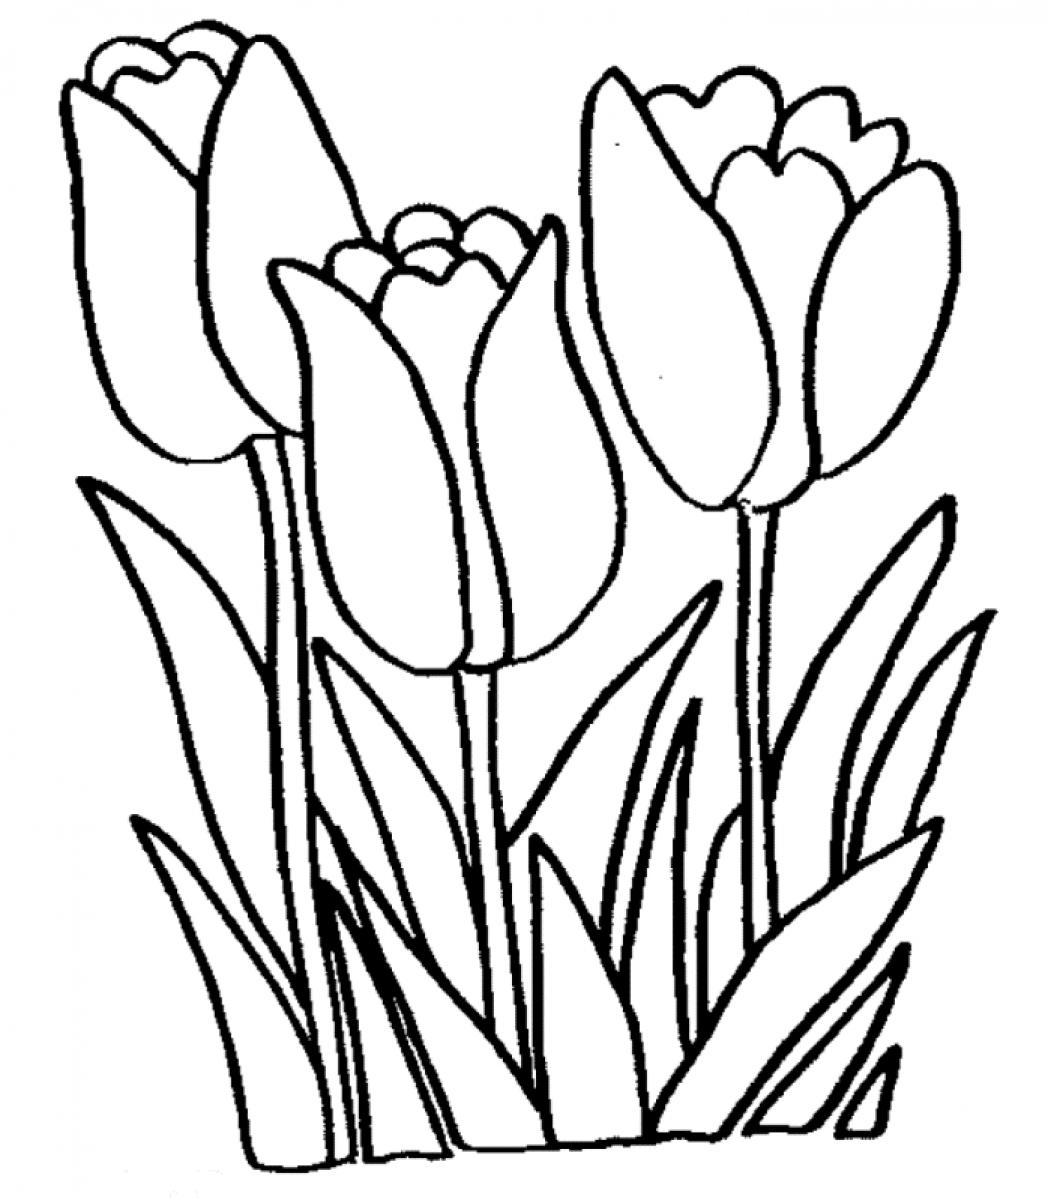 tulip coloring page - free printable tulip coloring pages for kids